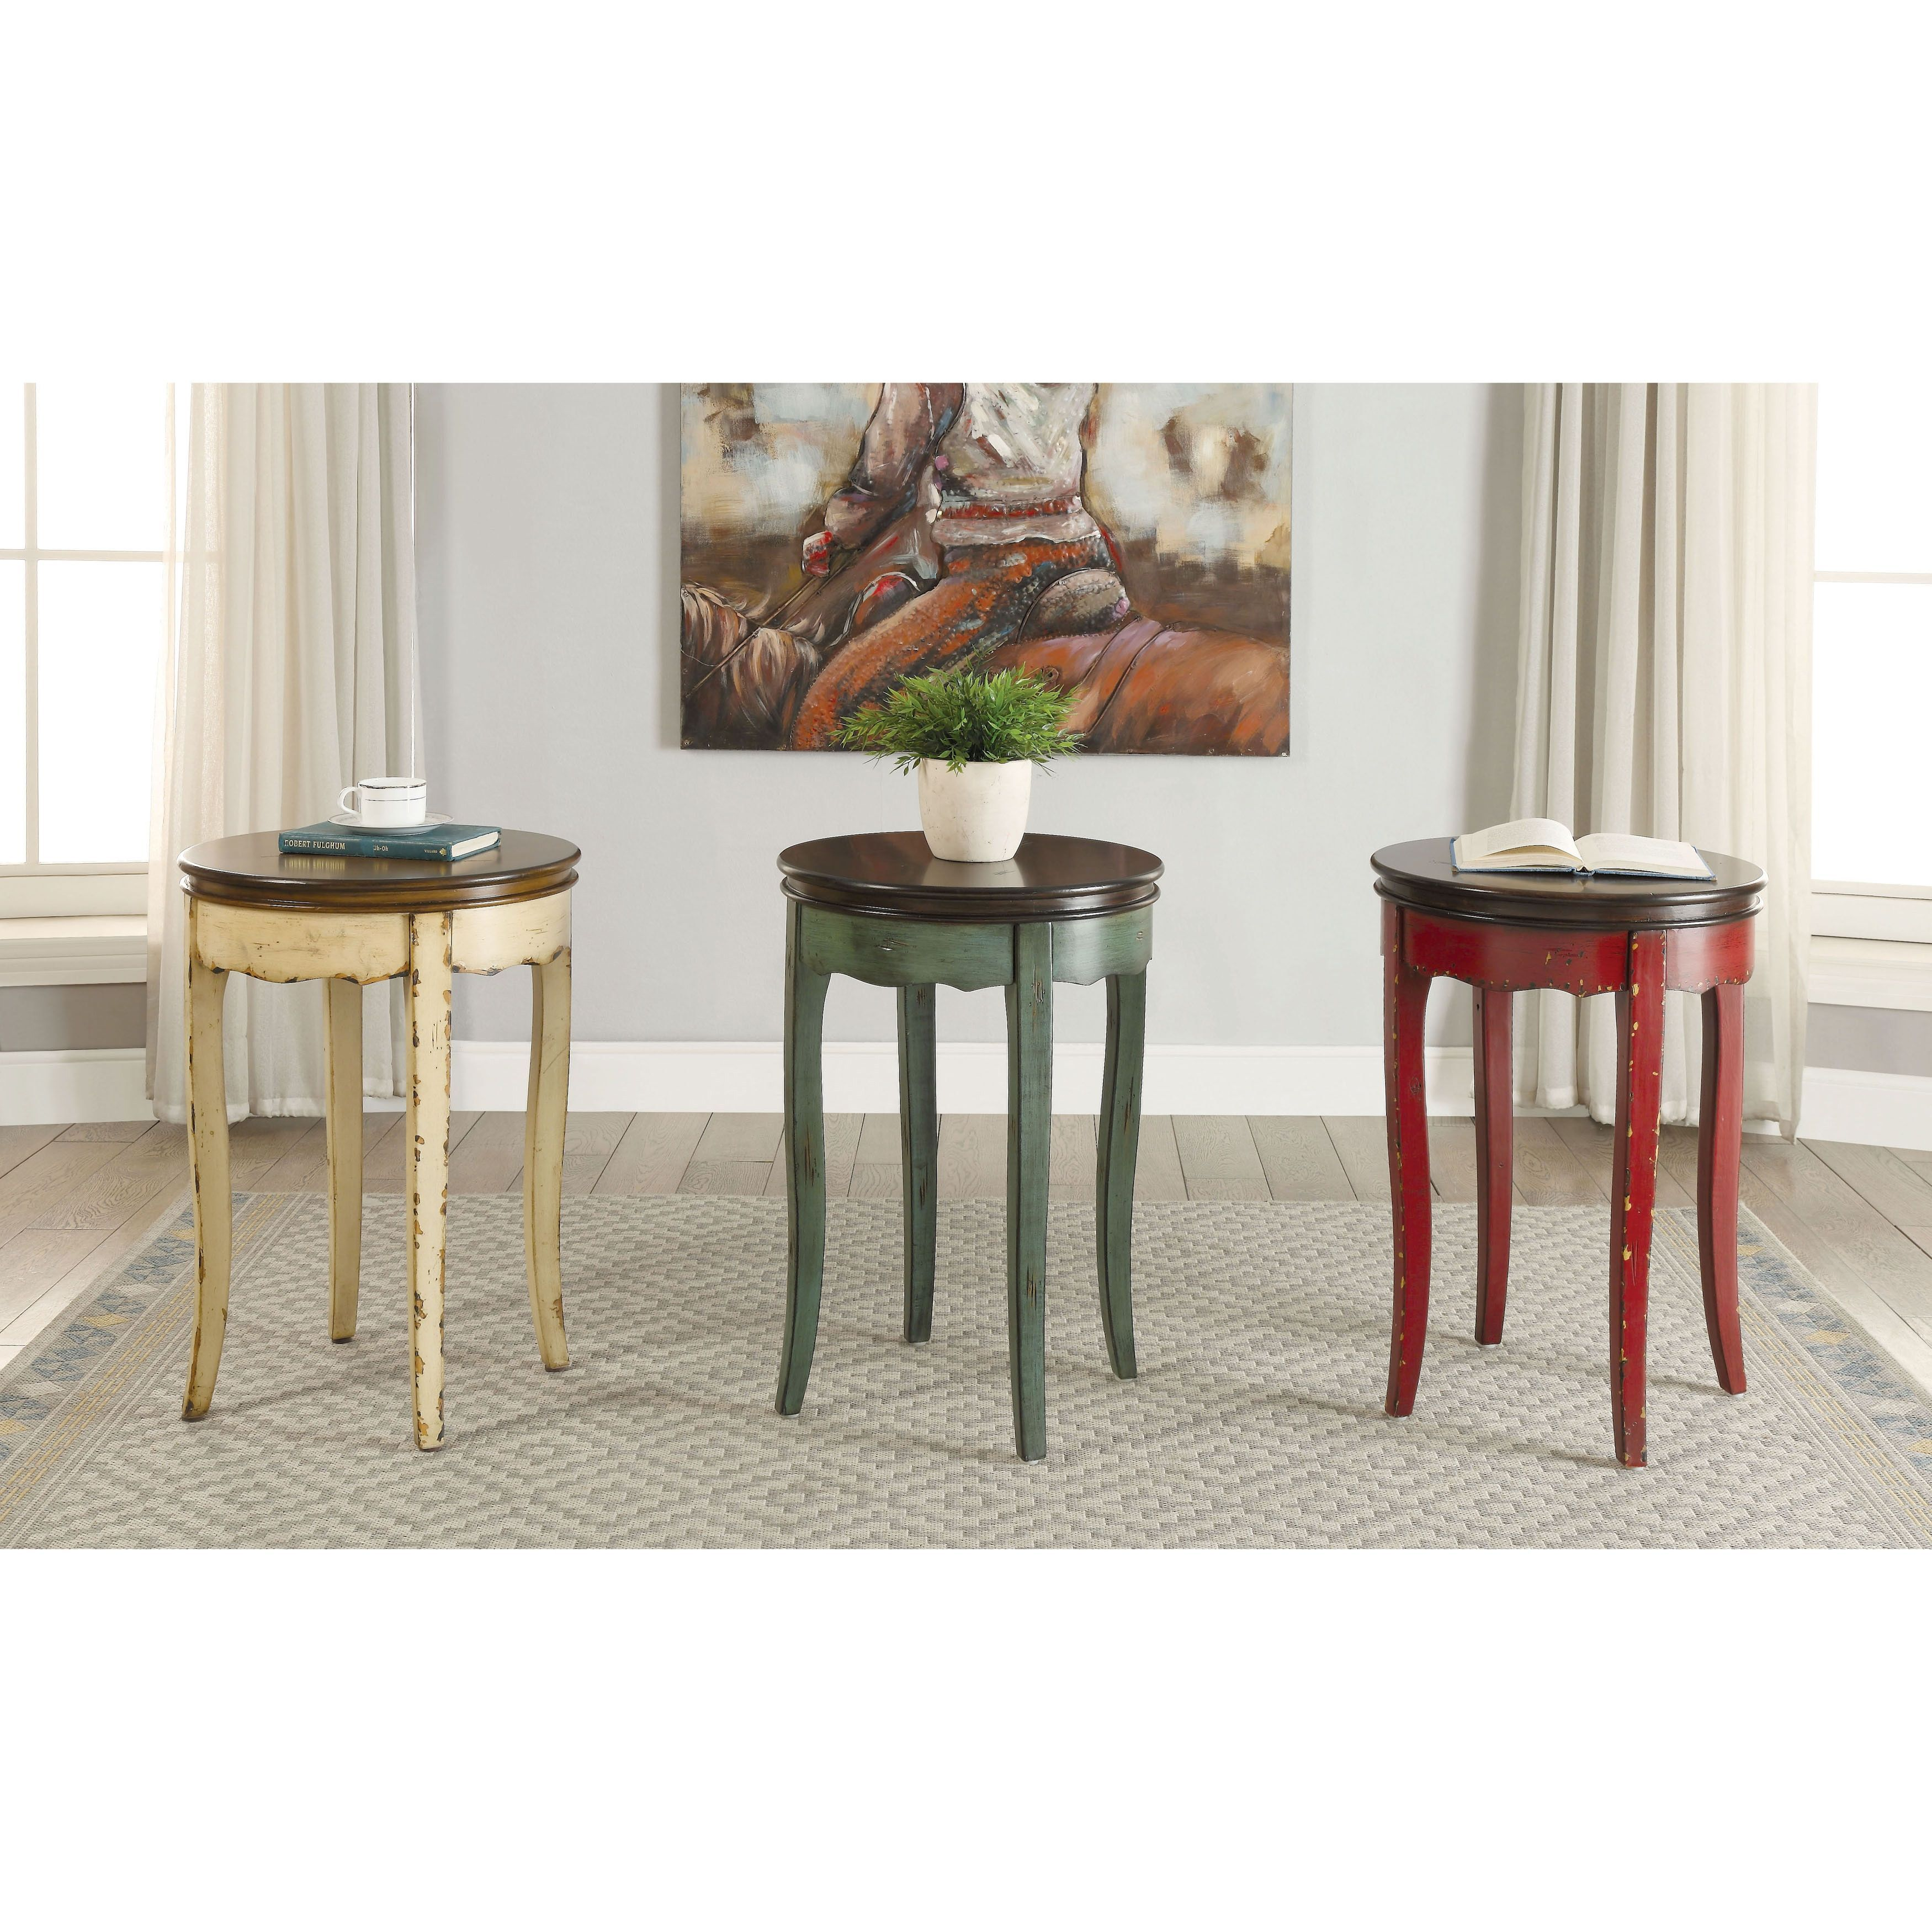 Furniture Of America Lira Vintage Style Two Tone Round Side Table White Brown Round Side Table Side Table White Side Tables [ 3500 x 3500 Pixel ]